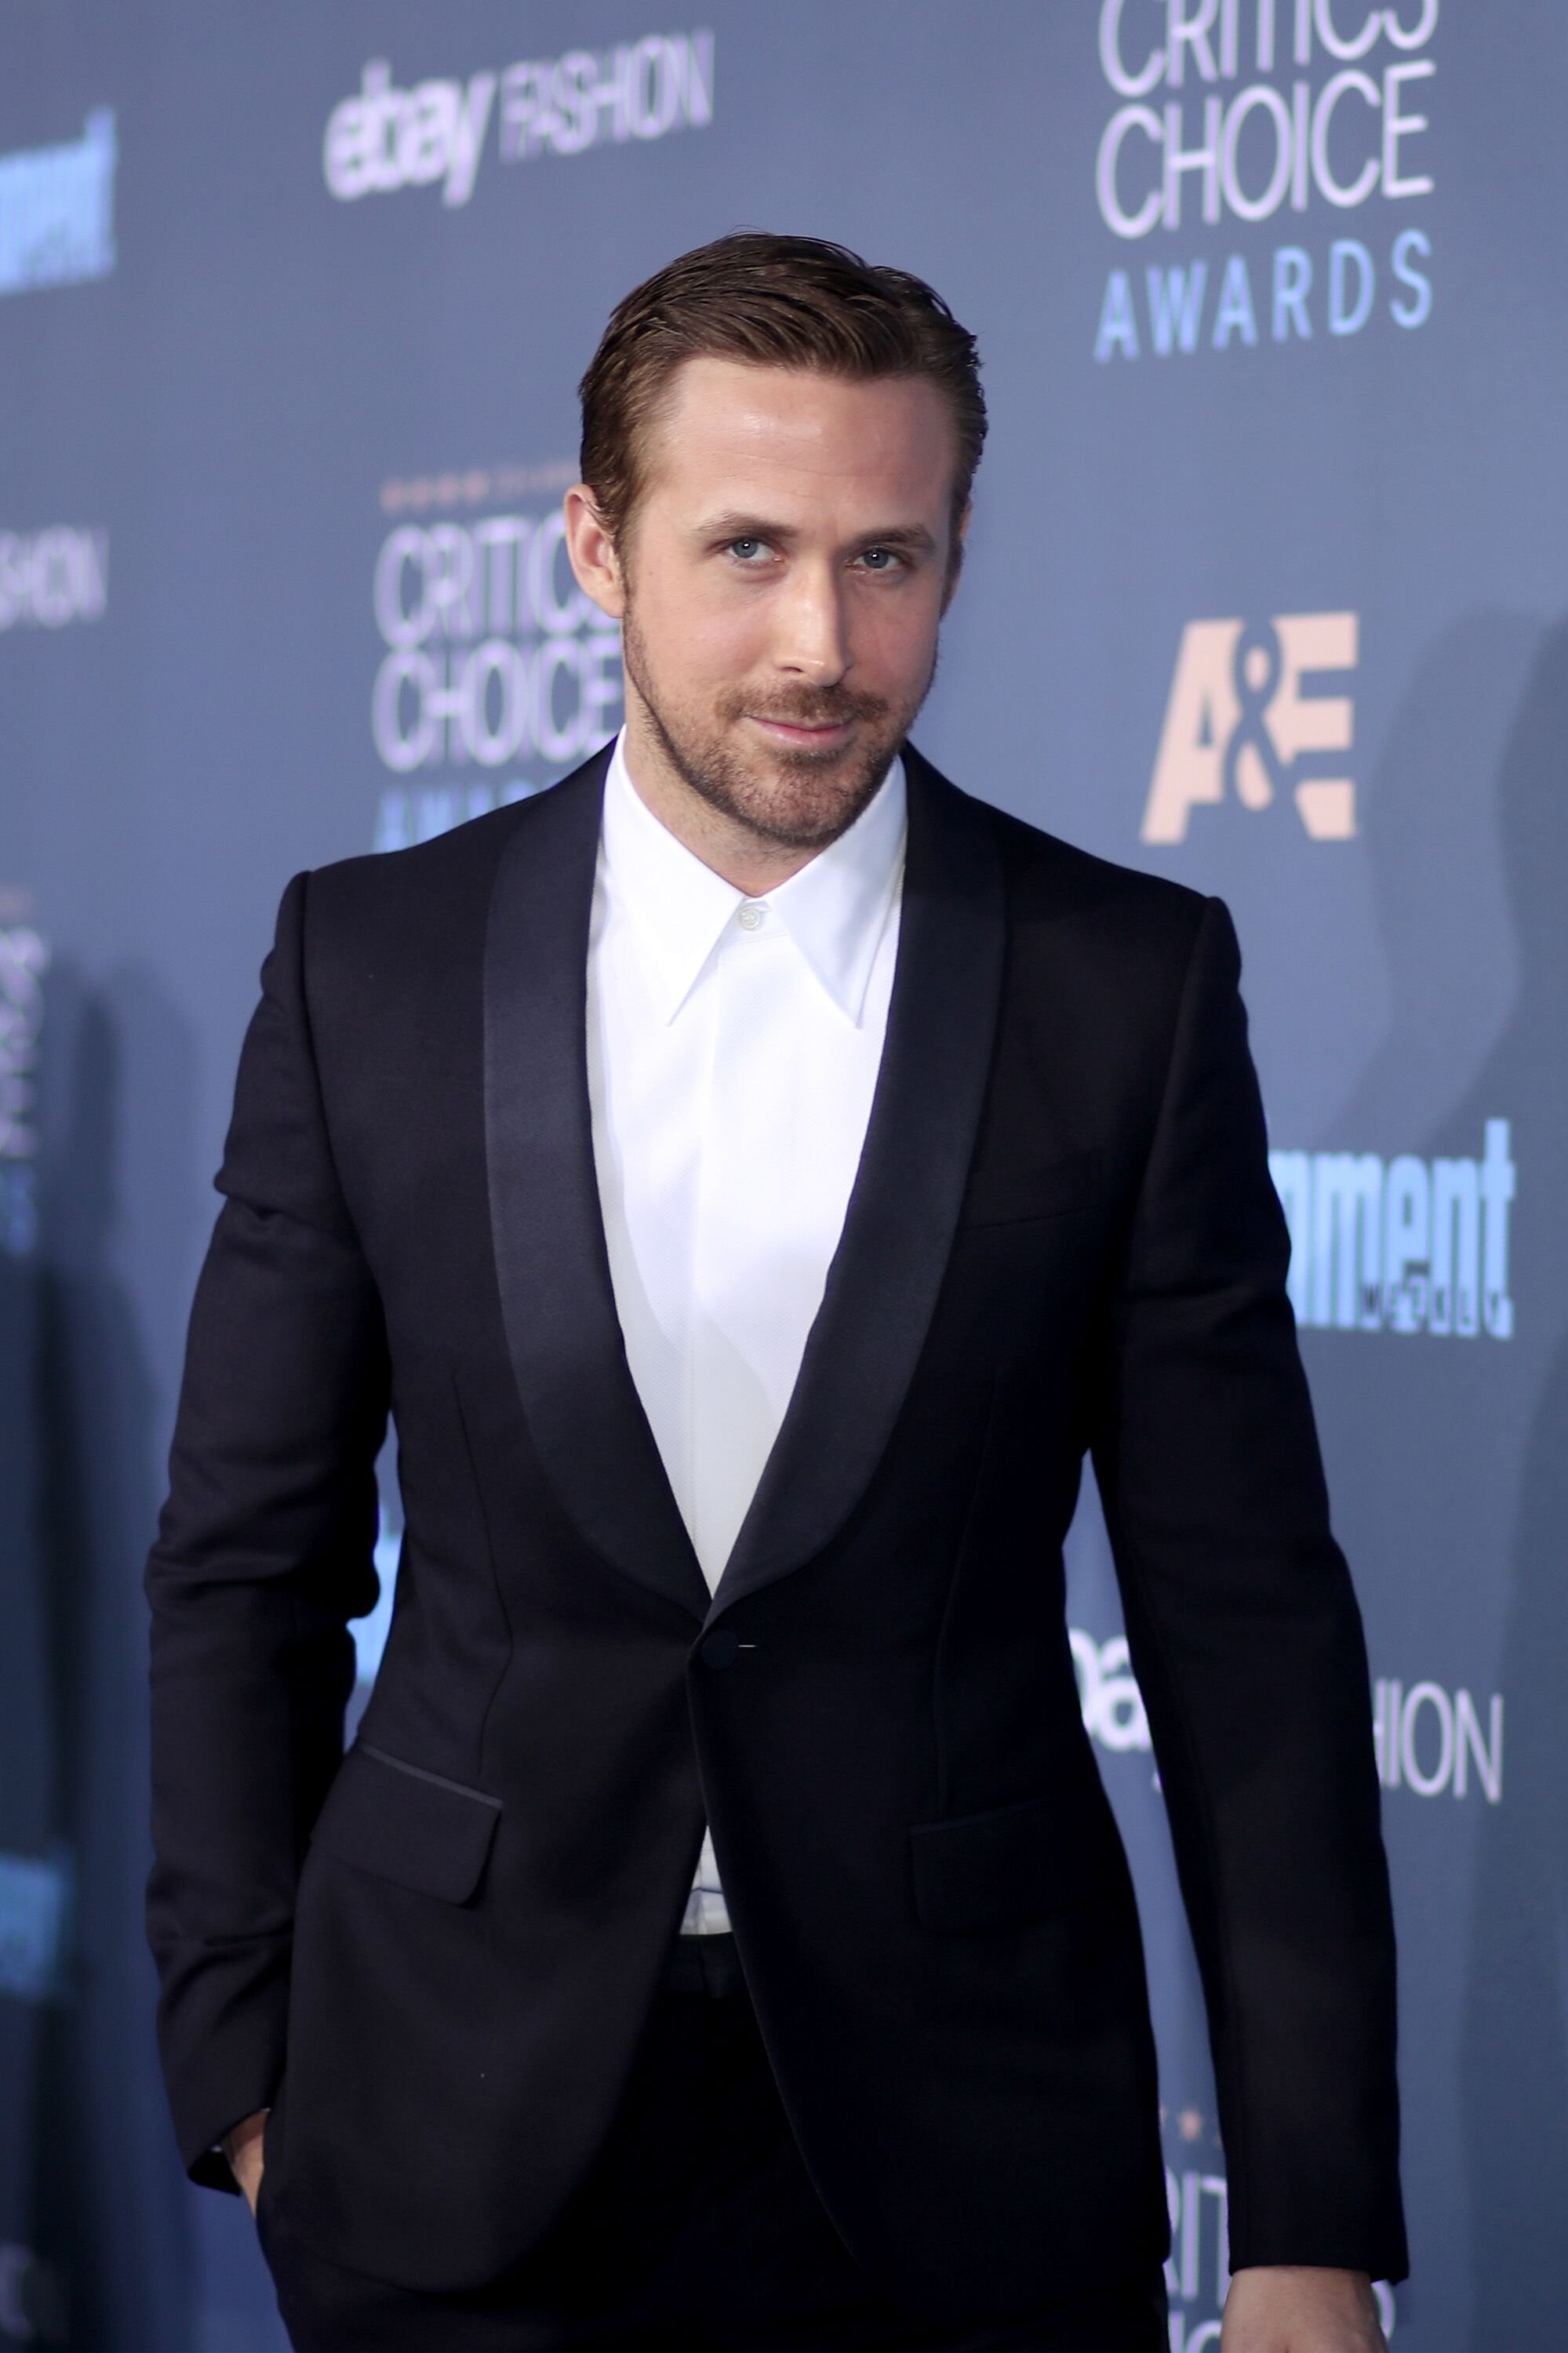 Actor Ryan Gosling attends The 22nd Annual Critics' Choice Awards at Barker Hangar in Santa Monica, California. | Photo: Getty Images